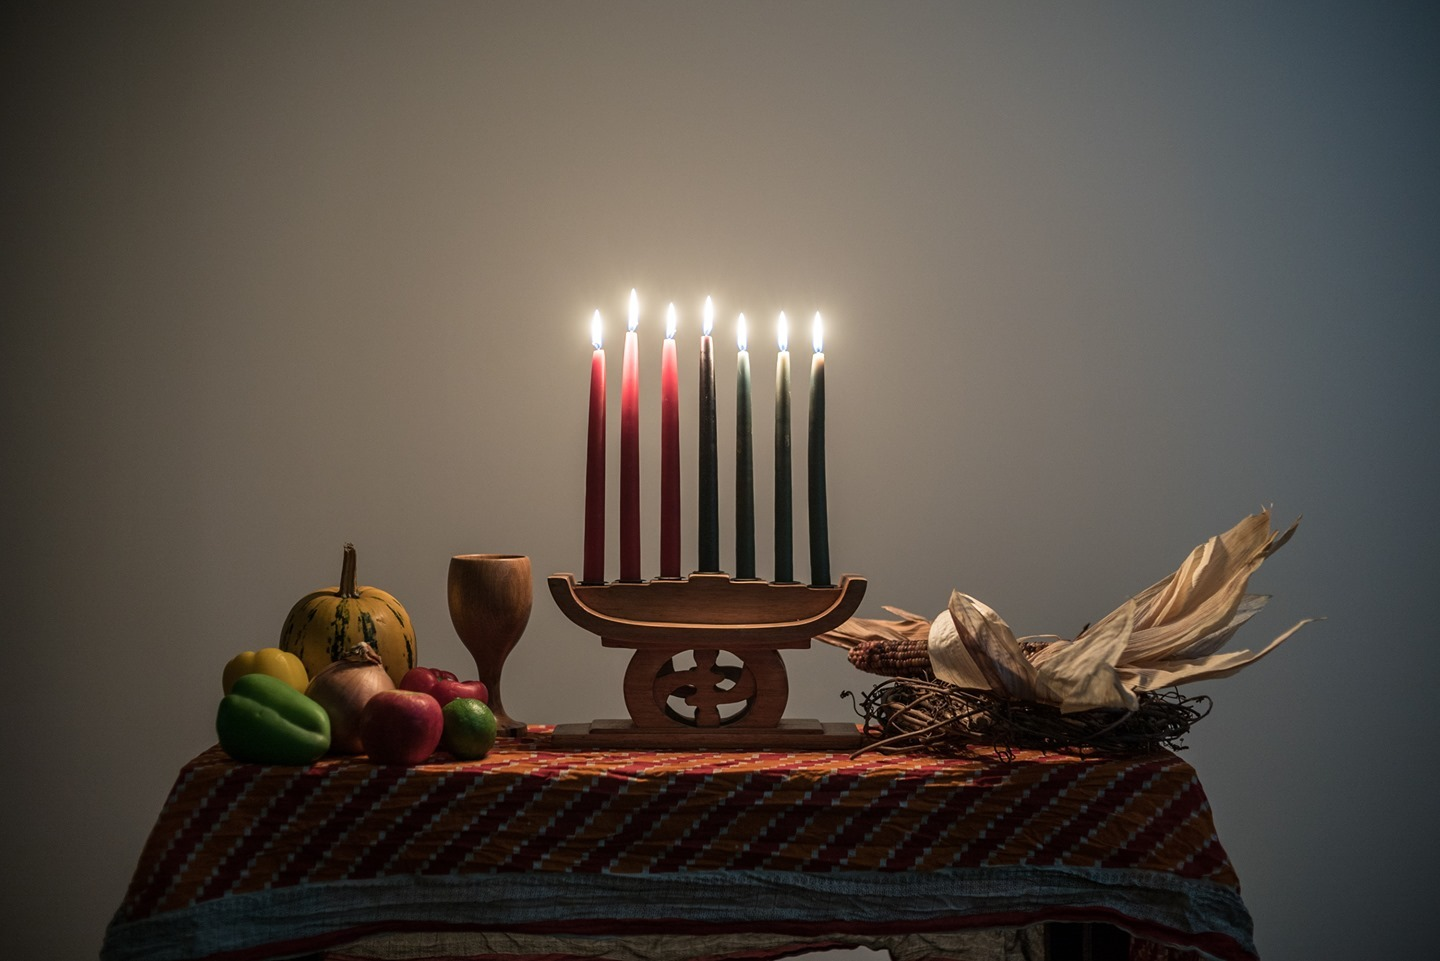 Today marks the first day of Kwanzaa. Wishing our #Spiders unity and good tidings throughout the coming week.